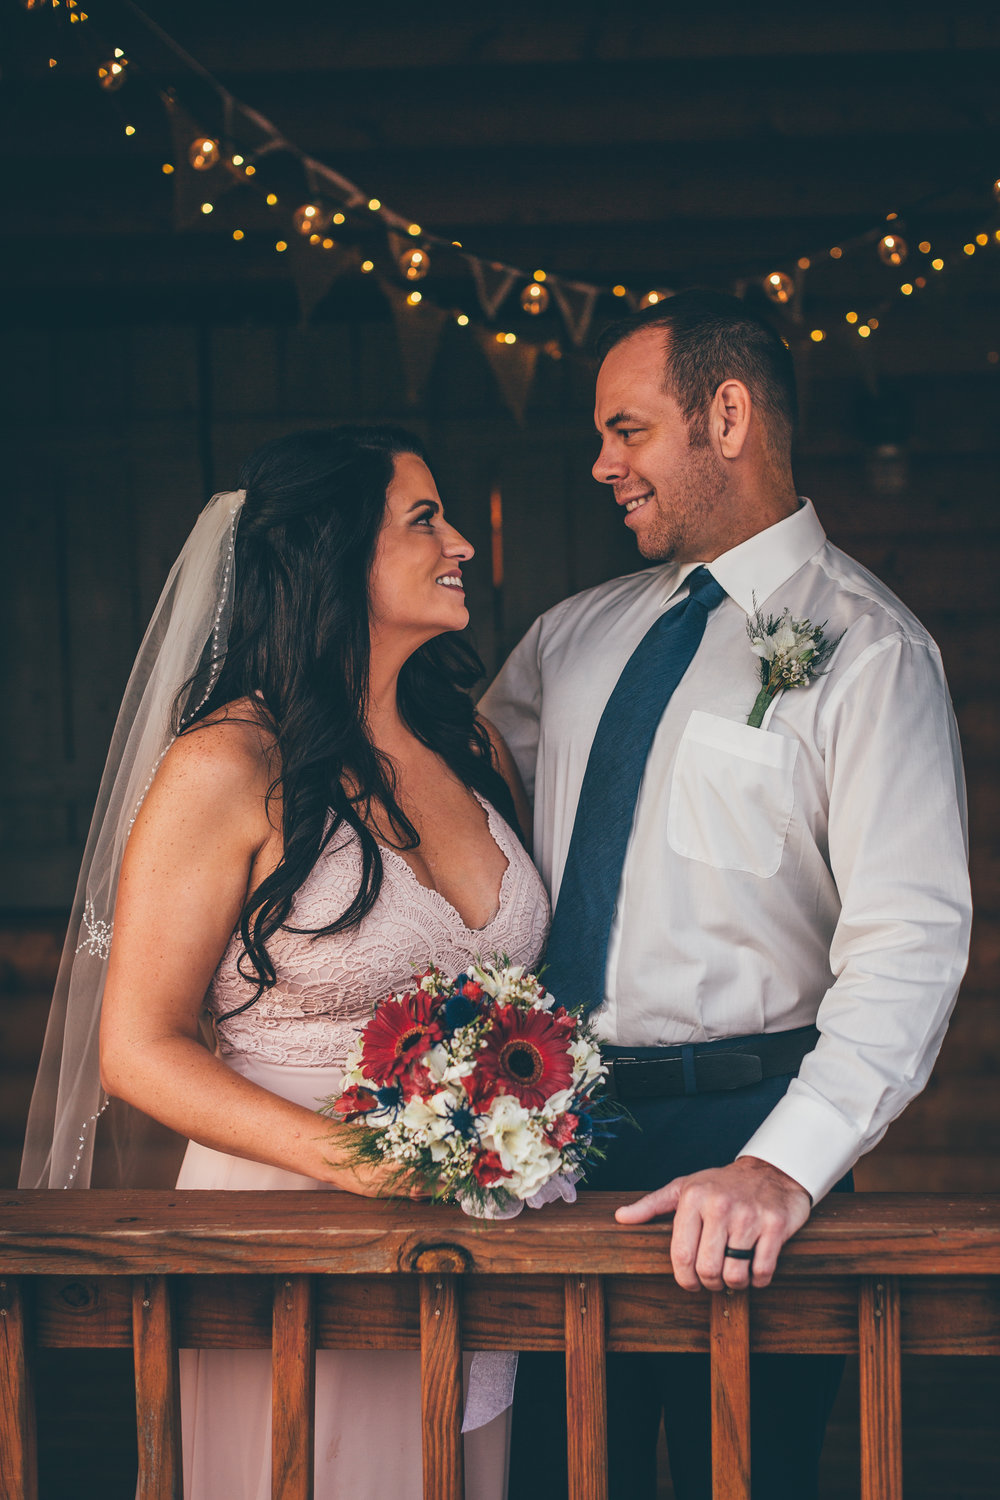 Jason & Leigh 10-8-18 - Elopement Ceremony For Two In The Smokies